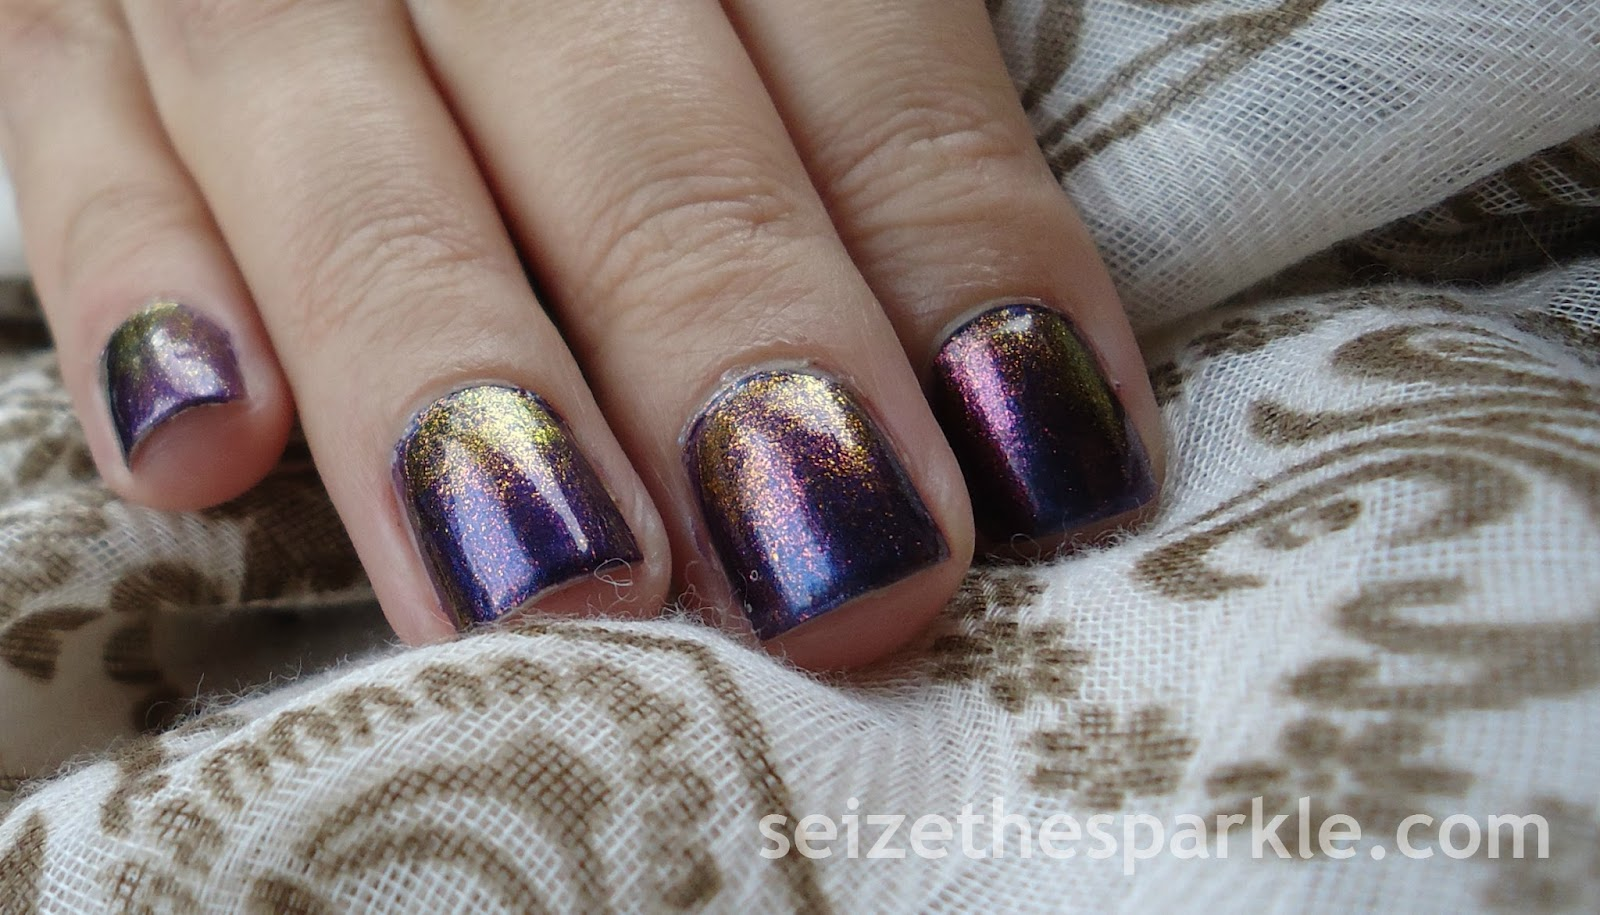 Layering with Orly Mysterious Curse and Hard Candy Beetle